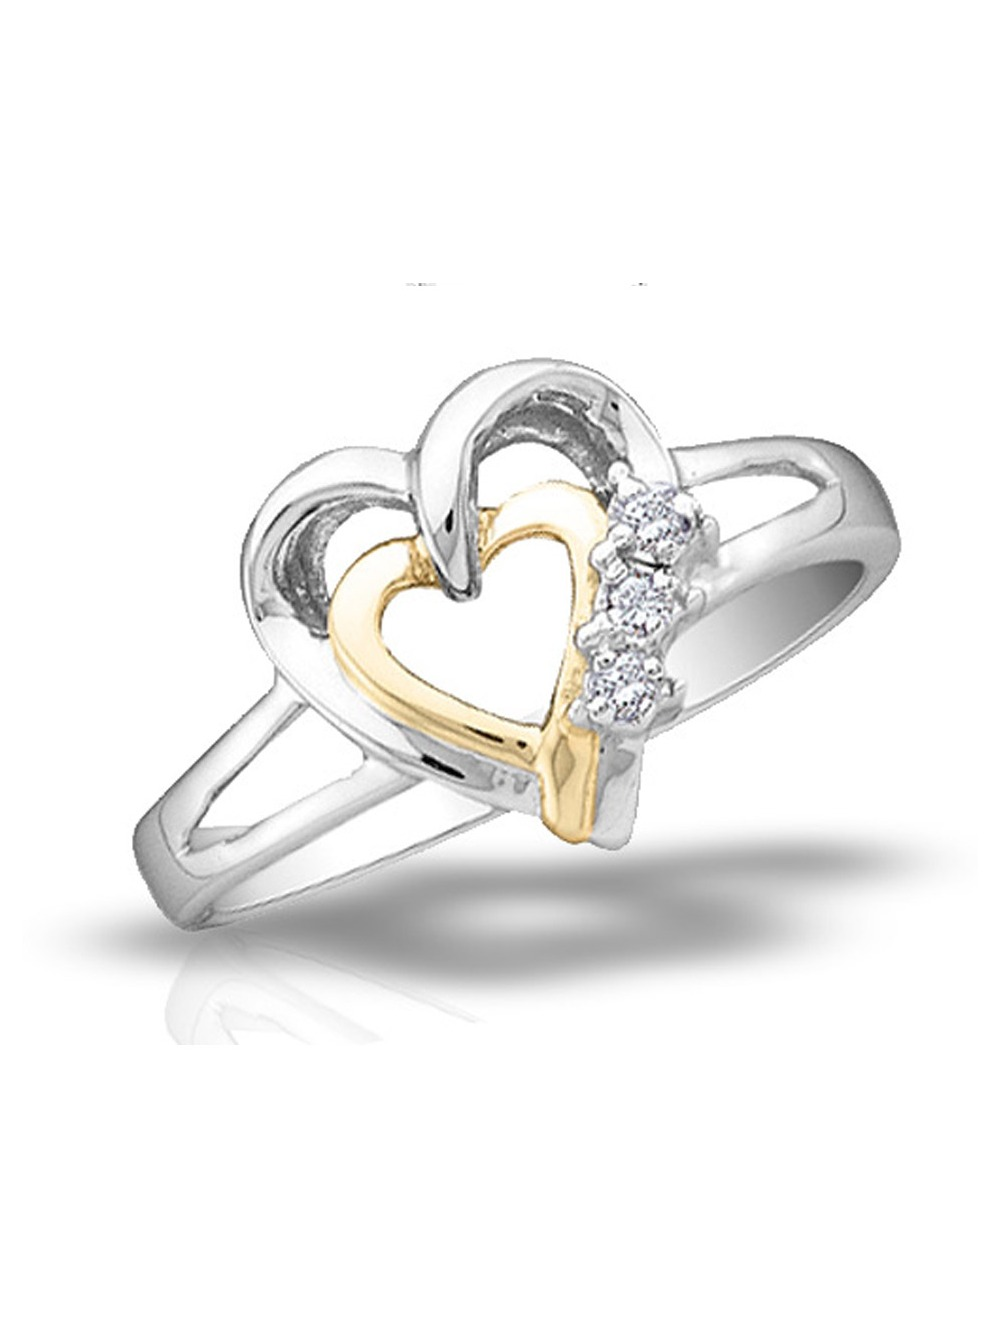 Diamond Heart Ring in Sterling Silver with 14K Yellow Gold Plating